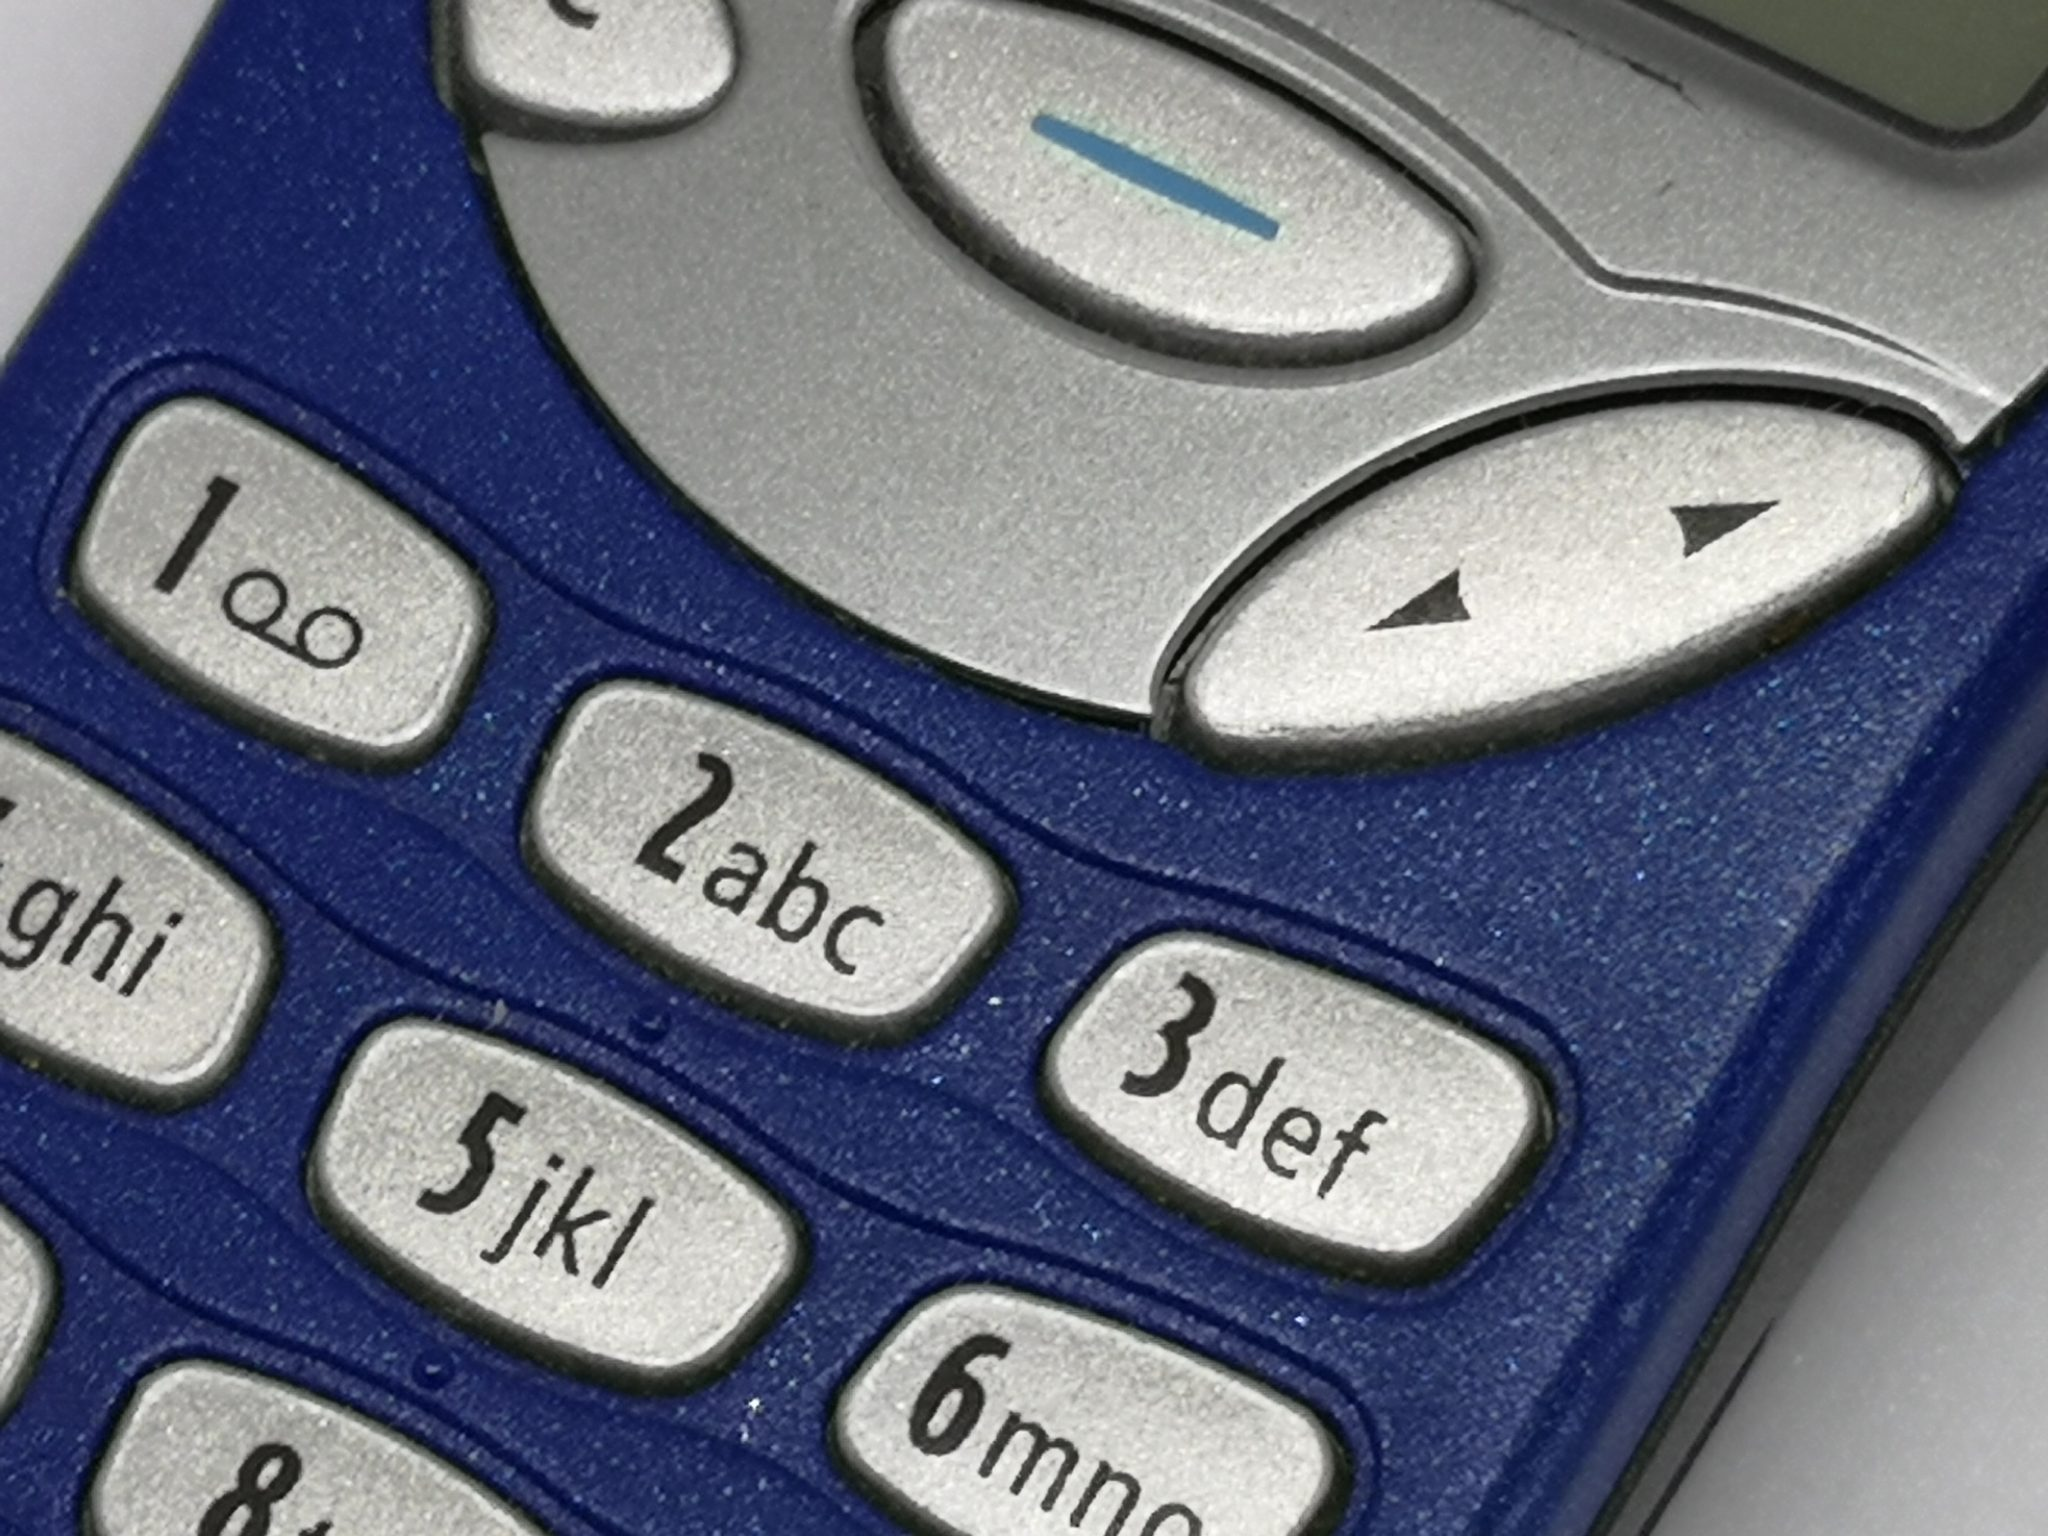 Nokia 3210 Vintage Mobile Phone Review - An Iconic Masterpiece